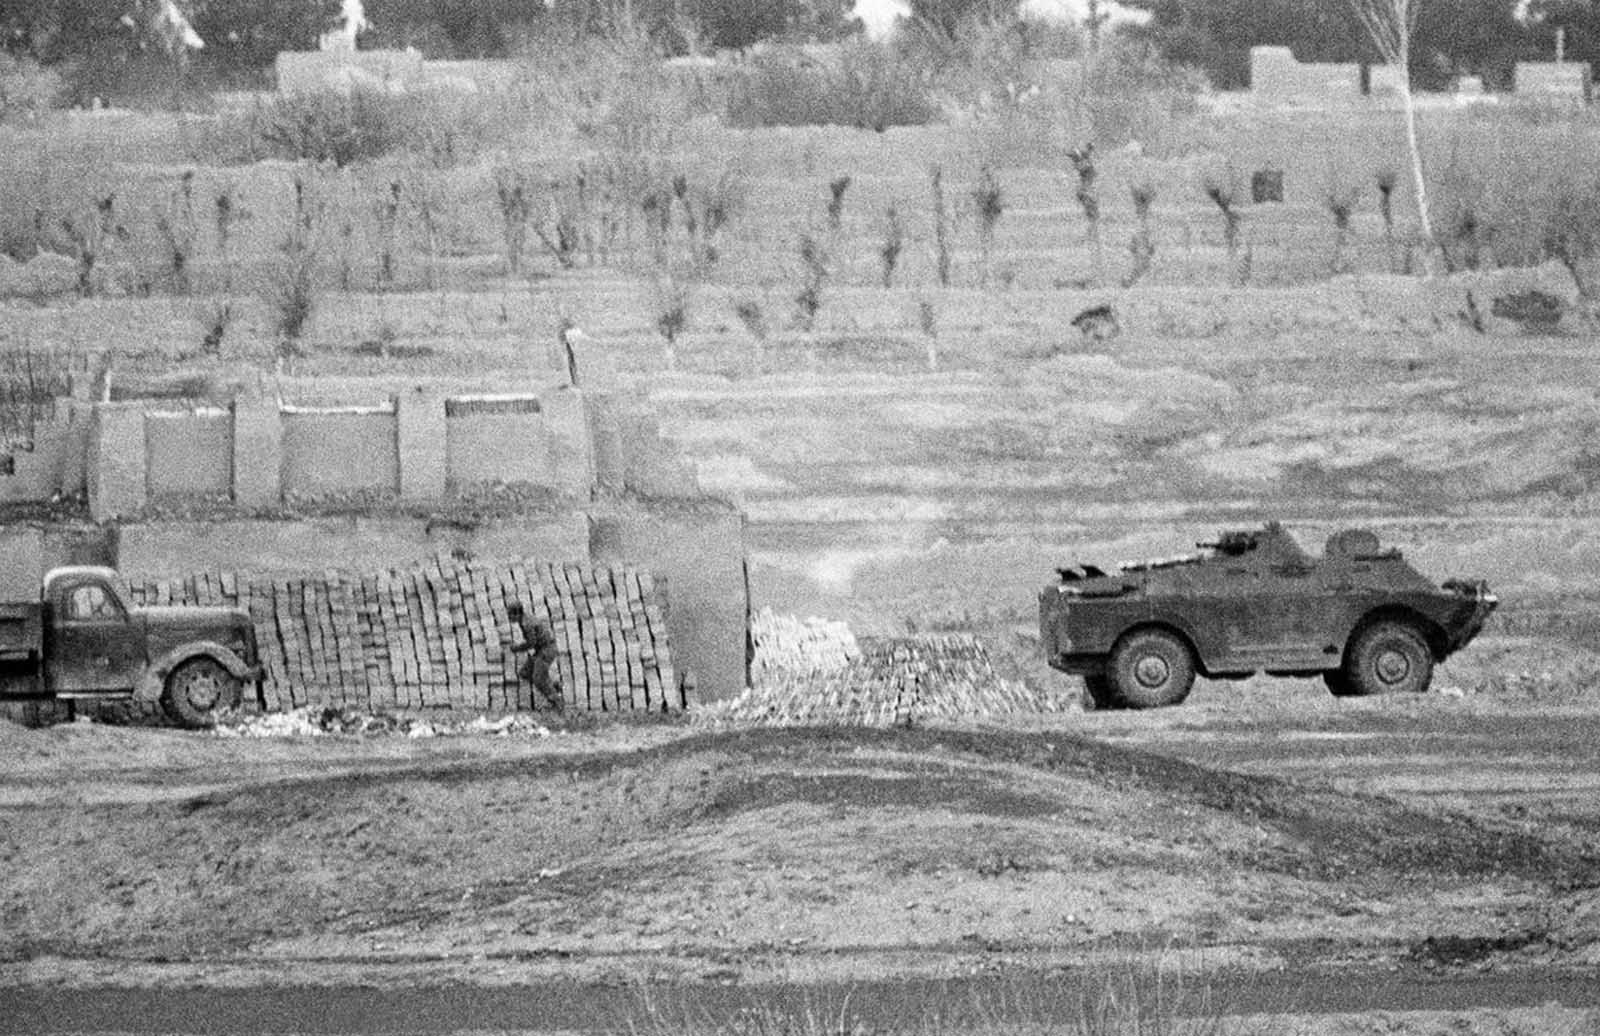 A Soviet soldier runs for cover, as his armored car comes under fire from Muslim rebels, near the town of Herat, on February 13, 1980.